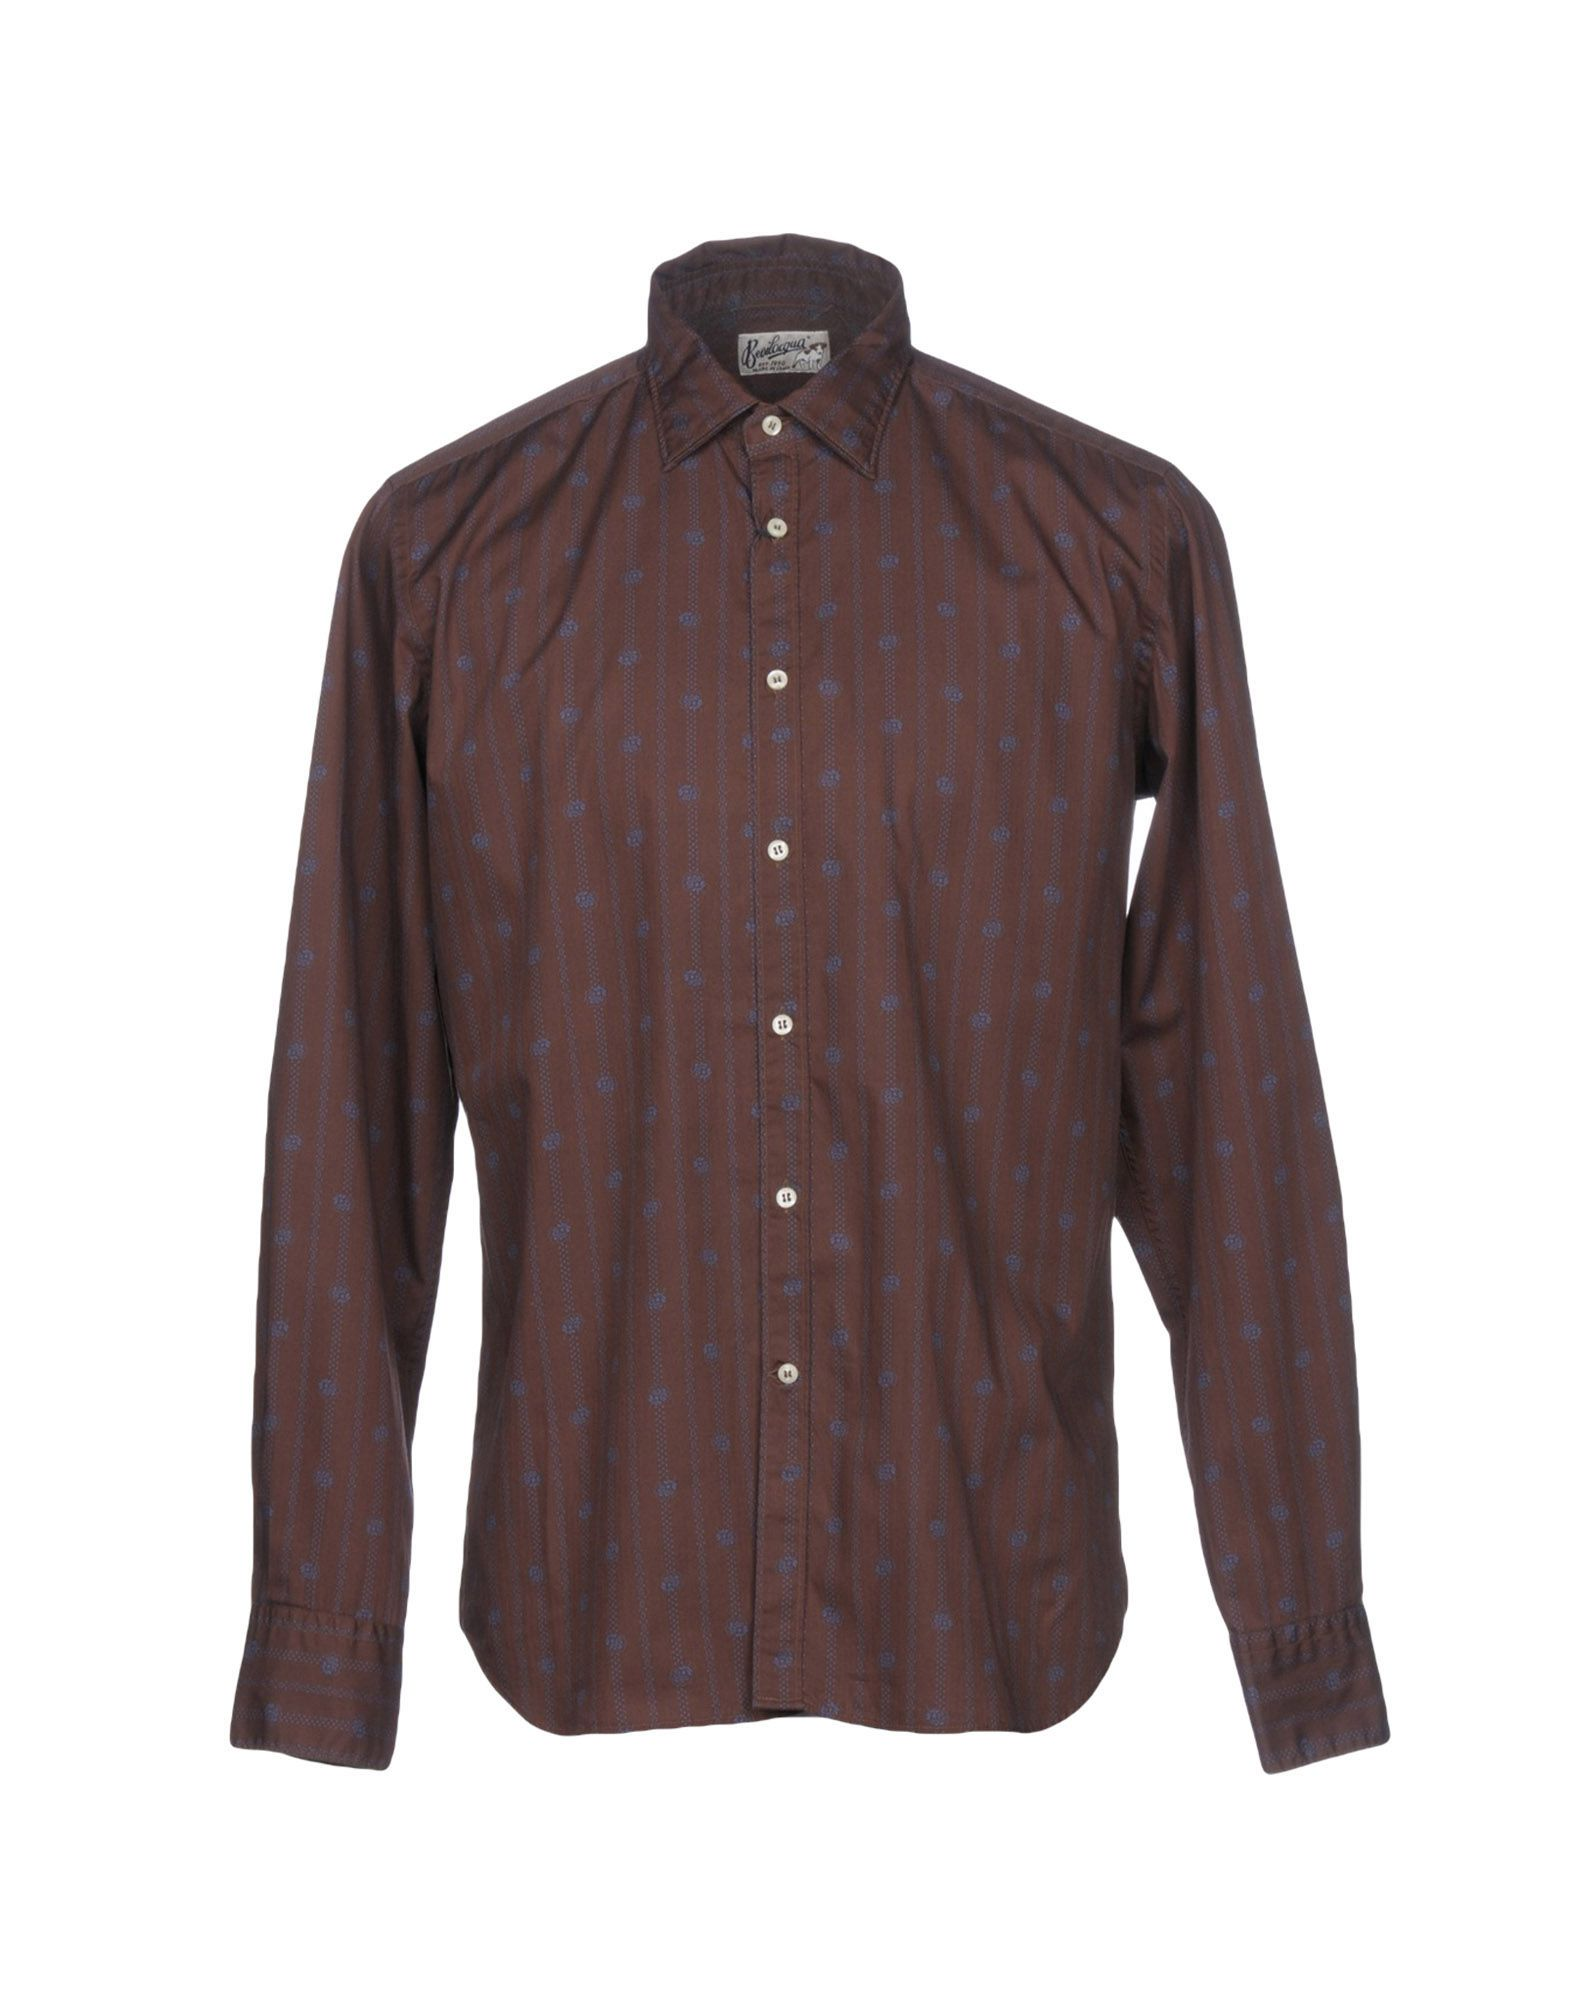 BEVILACQUA Patterned Shirt in Cocoa